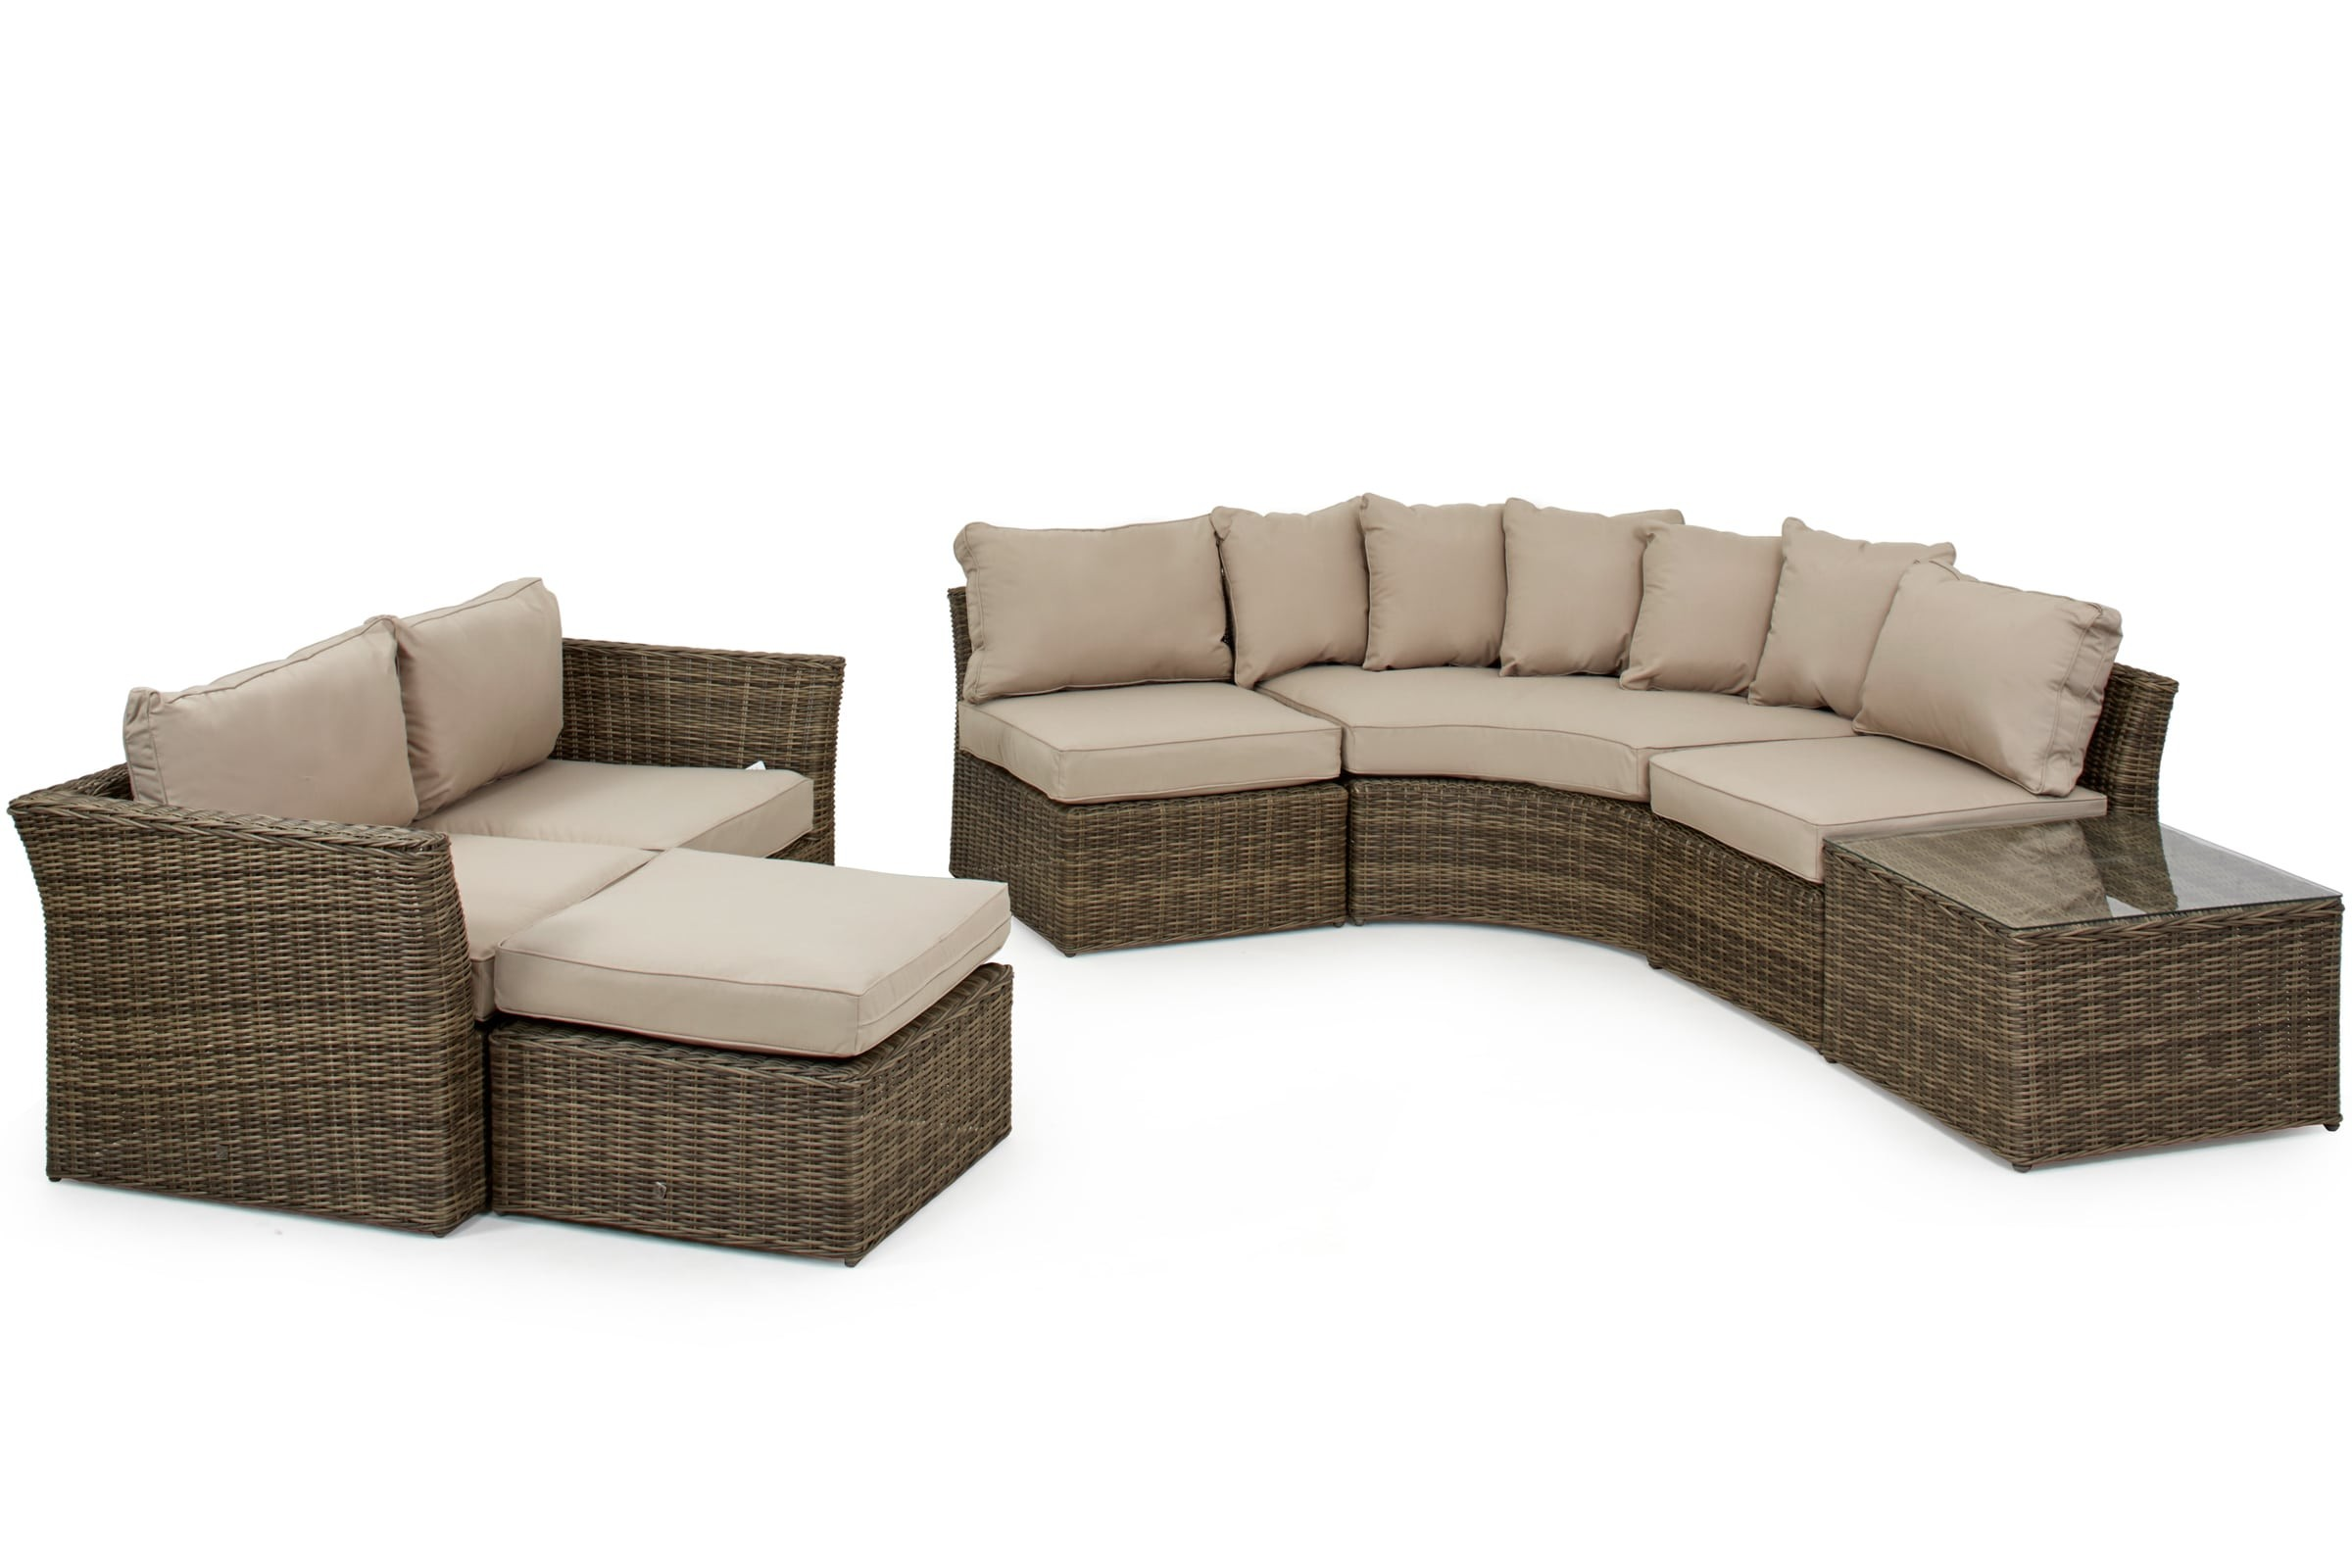 9 Seater Rattan Corner Sofa Dining Set Garden Furniture